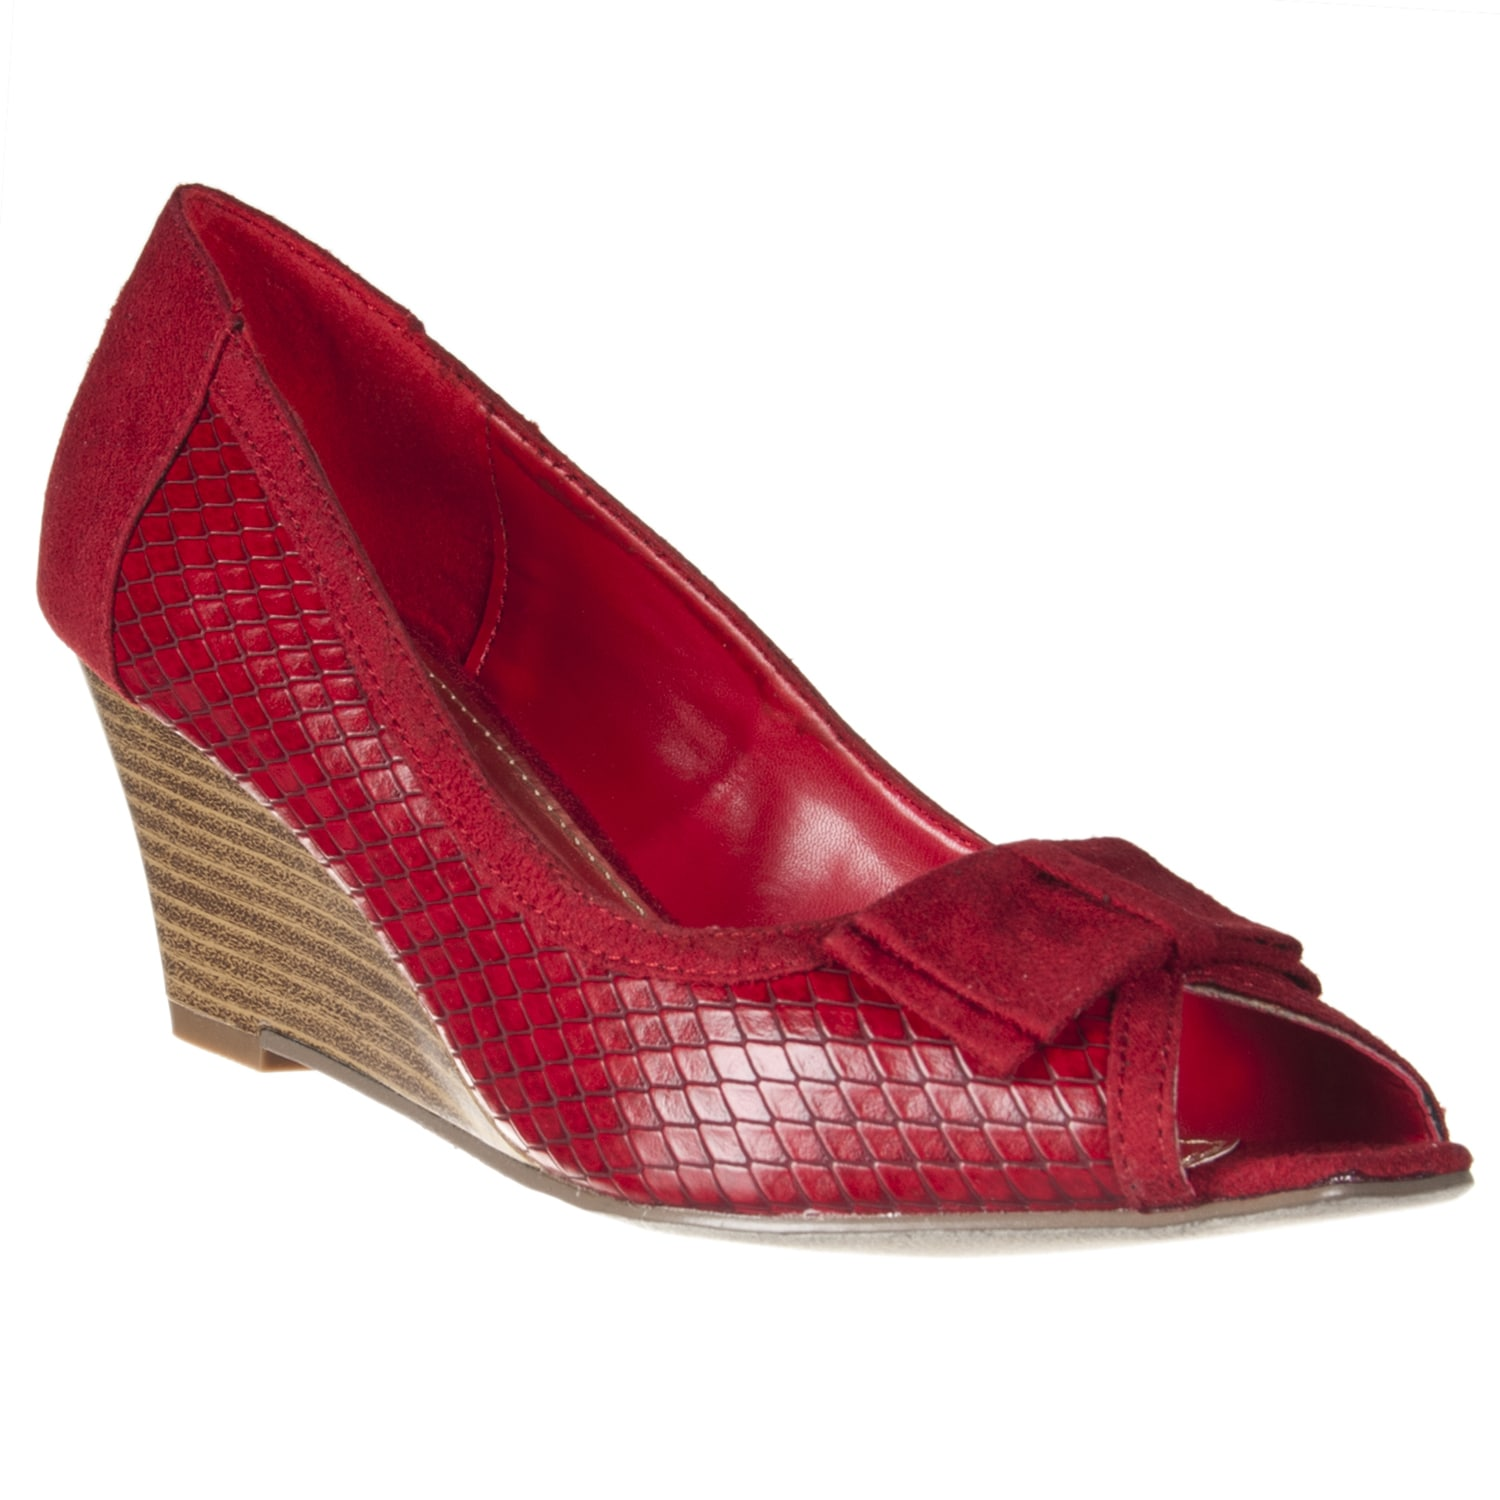 Riverberry Women's 'Tyler' Red Peep Toe Wedges